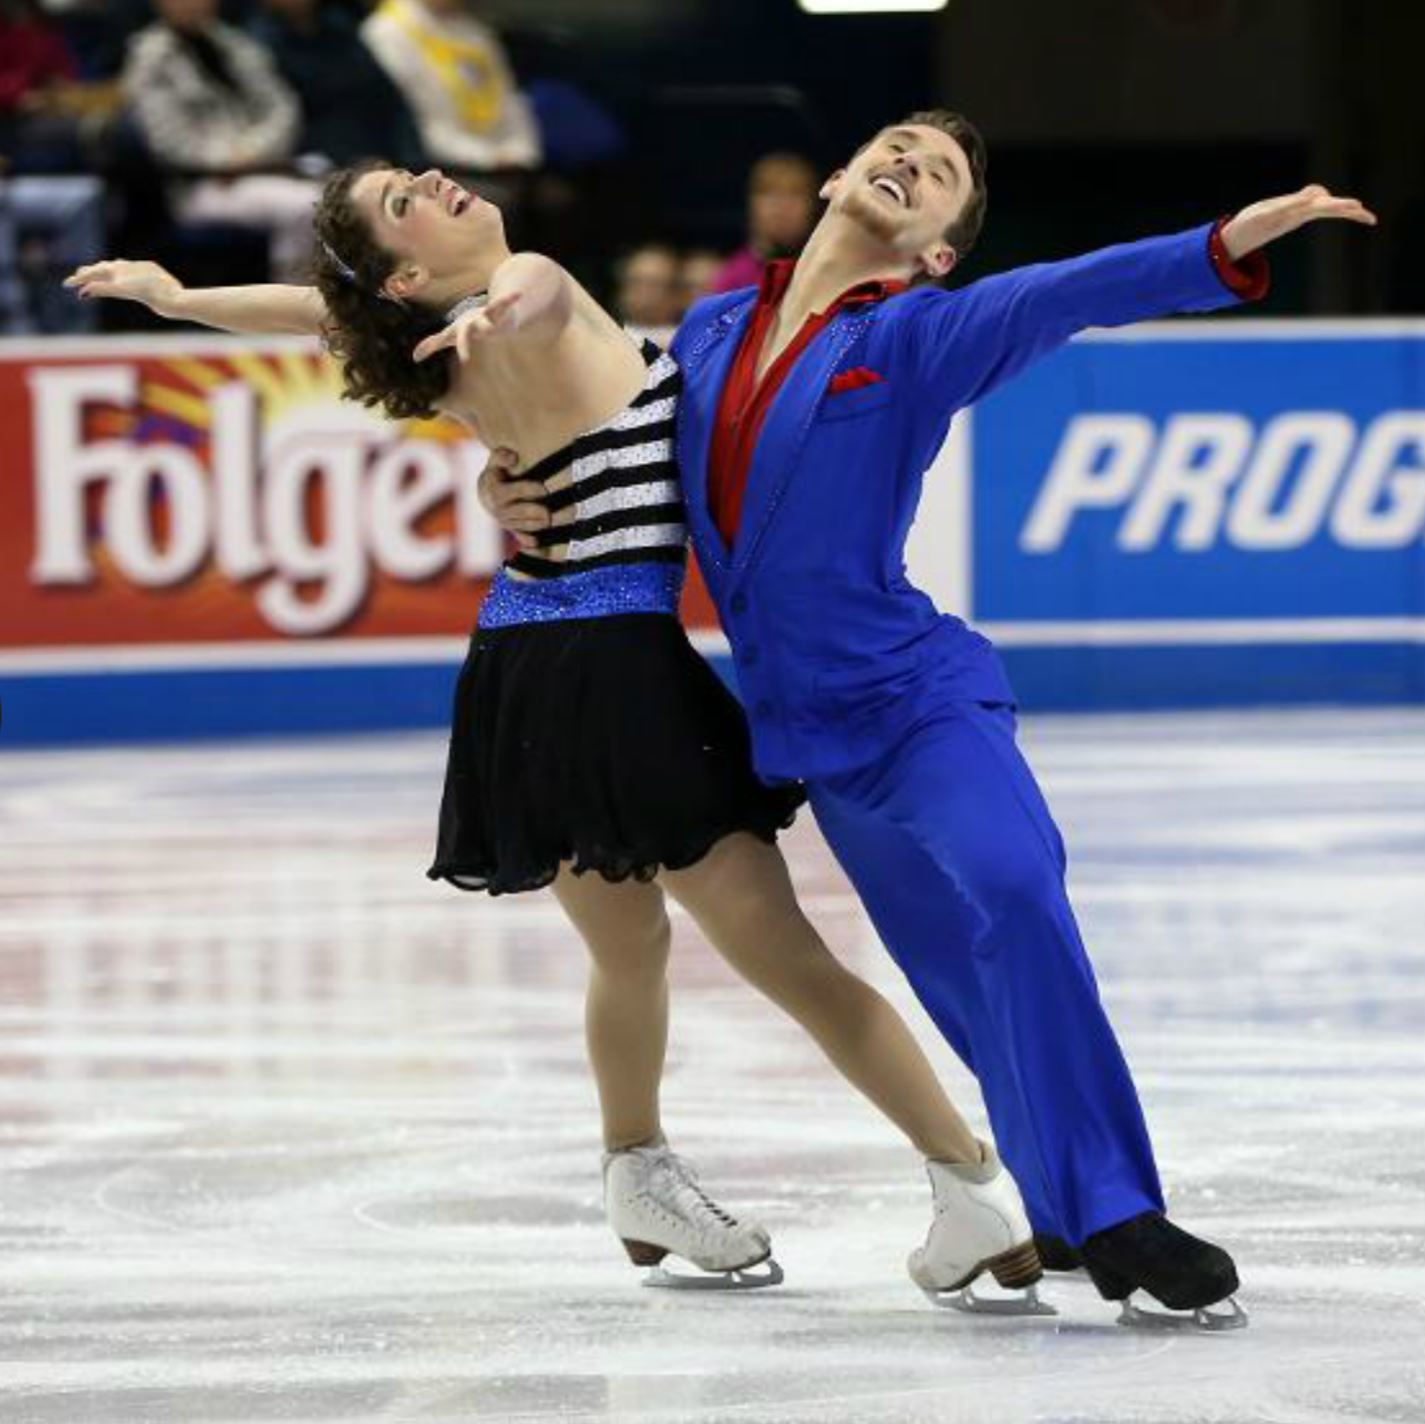 Danielle and Alexander Gamelin twins won the national intermediate title in ice dancing in 2009 and bronze in juvenile dance in 2008. They are 2015 Eastern Sectional senior dance champions.